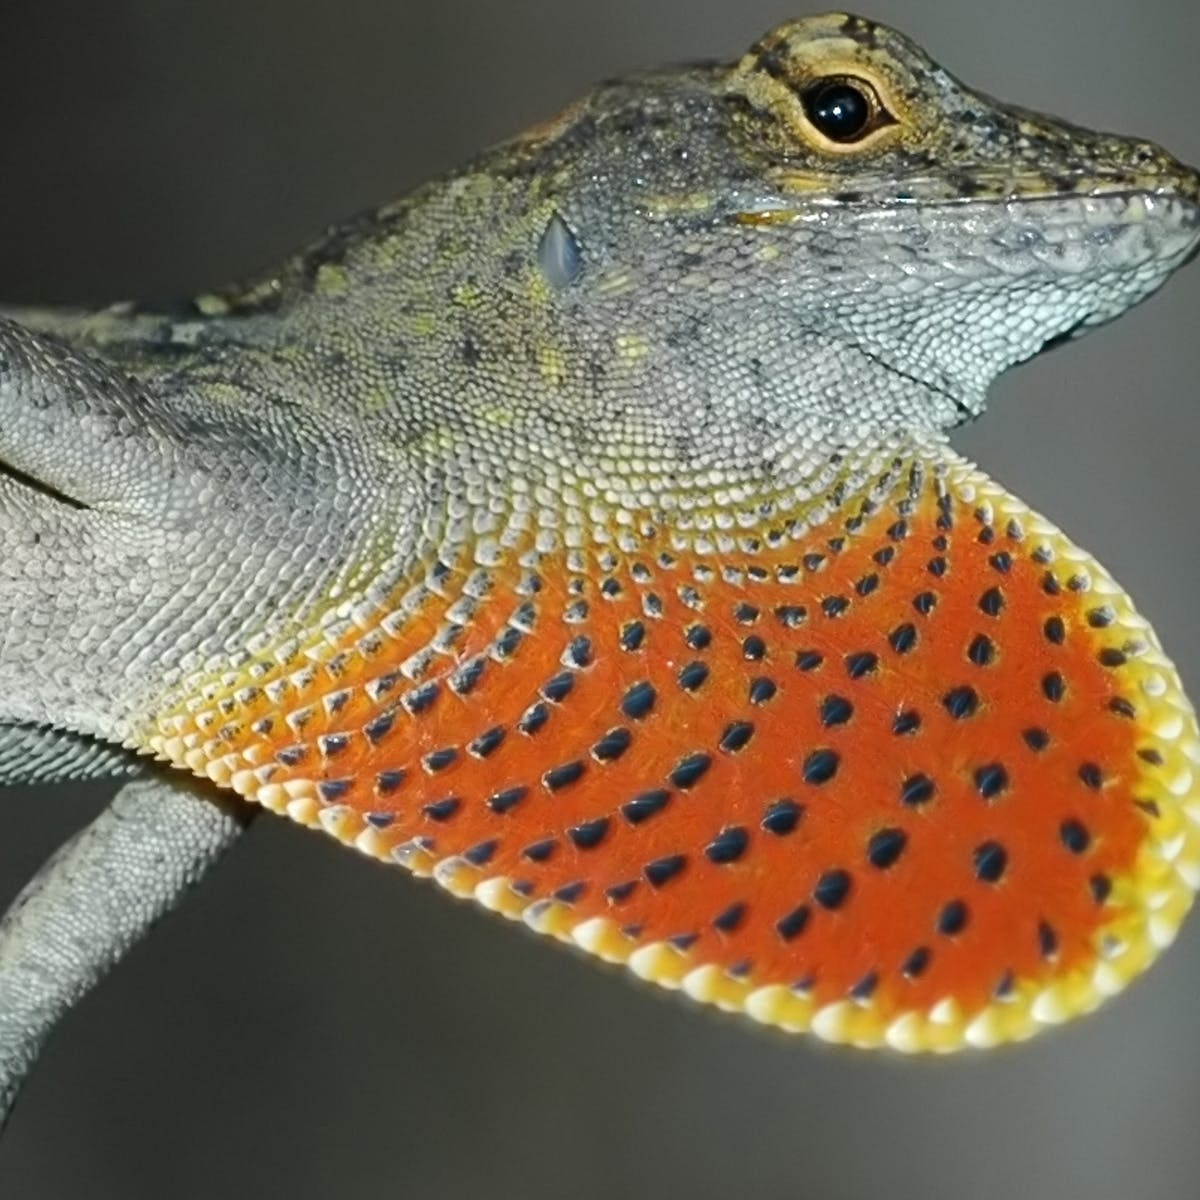 Rapidly evolving lizards show how some creatures can adapt